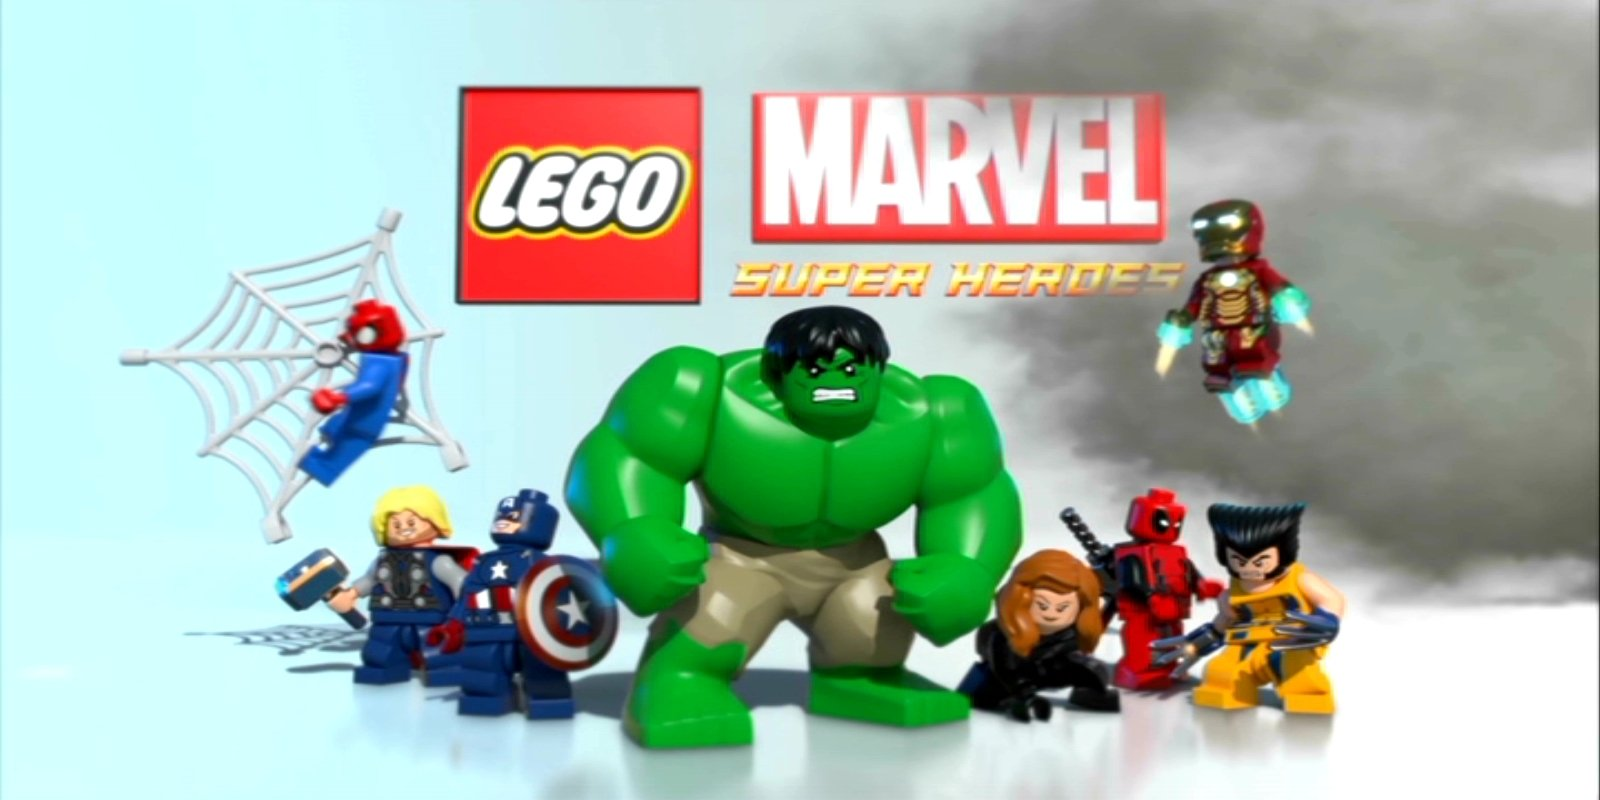 LEGO Marvel Super Heroes Wallpaper and Background Image 1600x800 1600x800